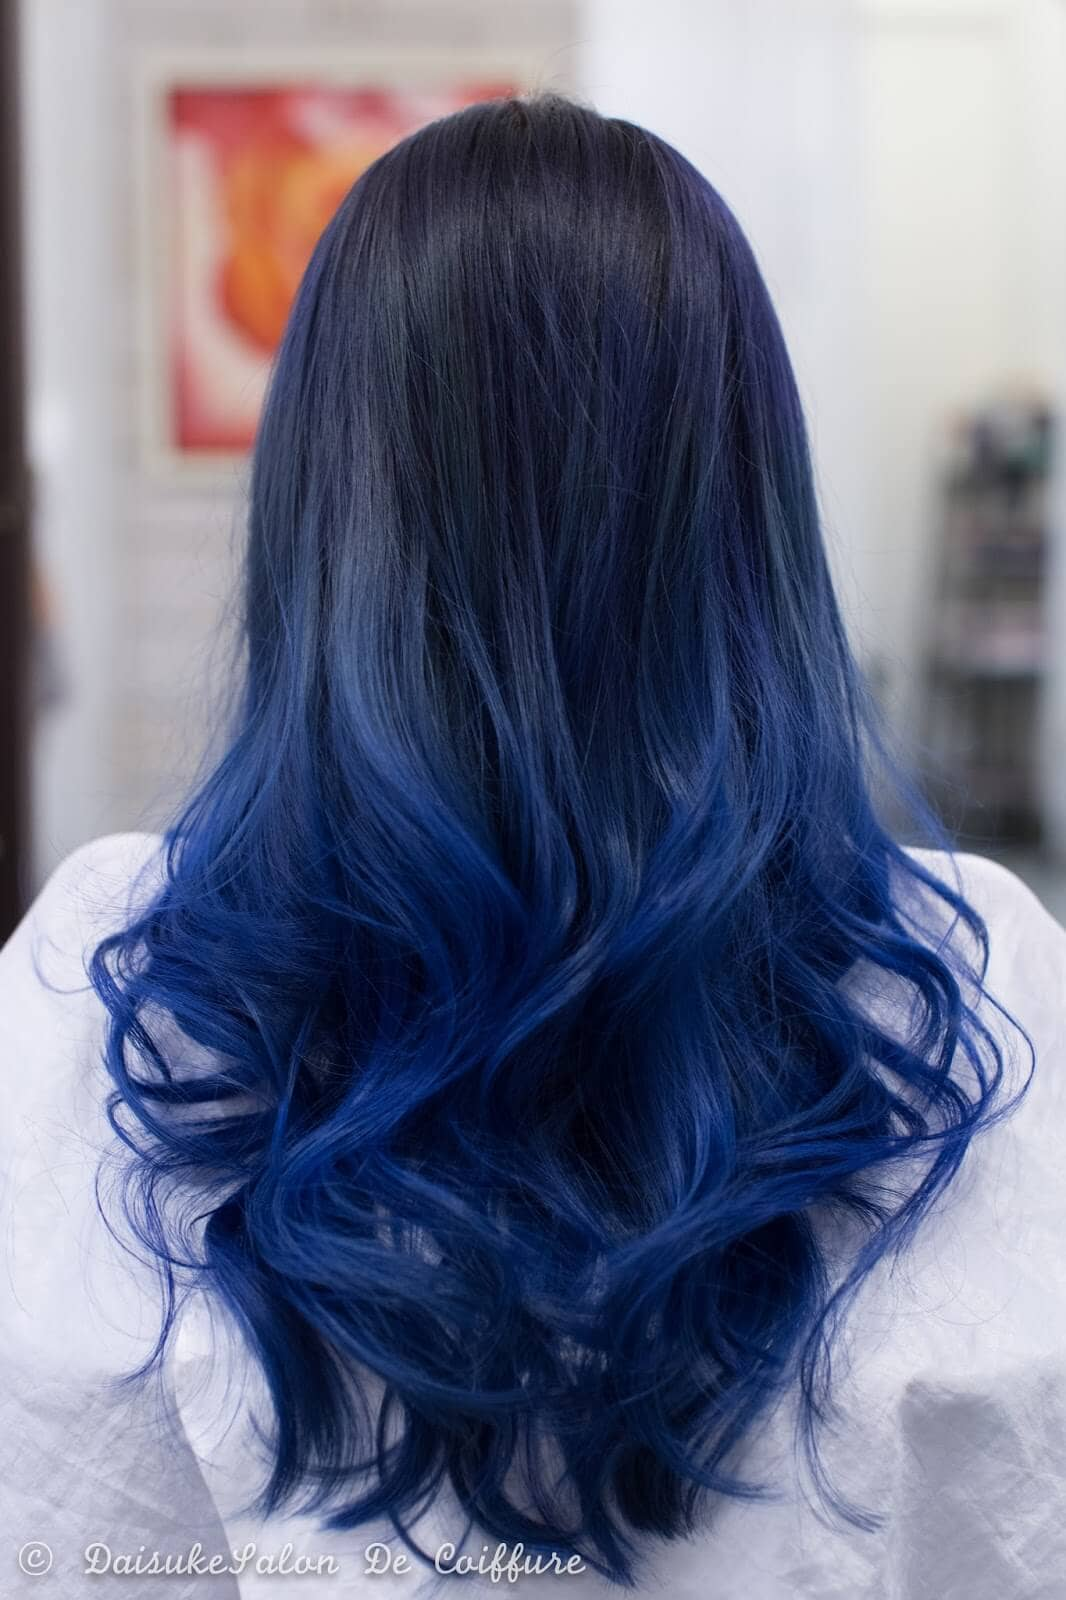 Black And Blue Ombre Hairstyle